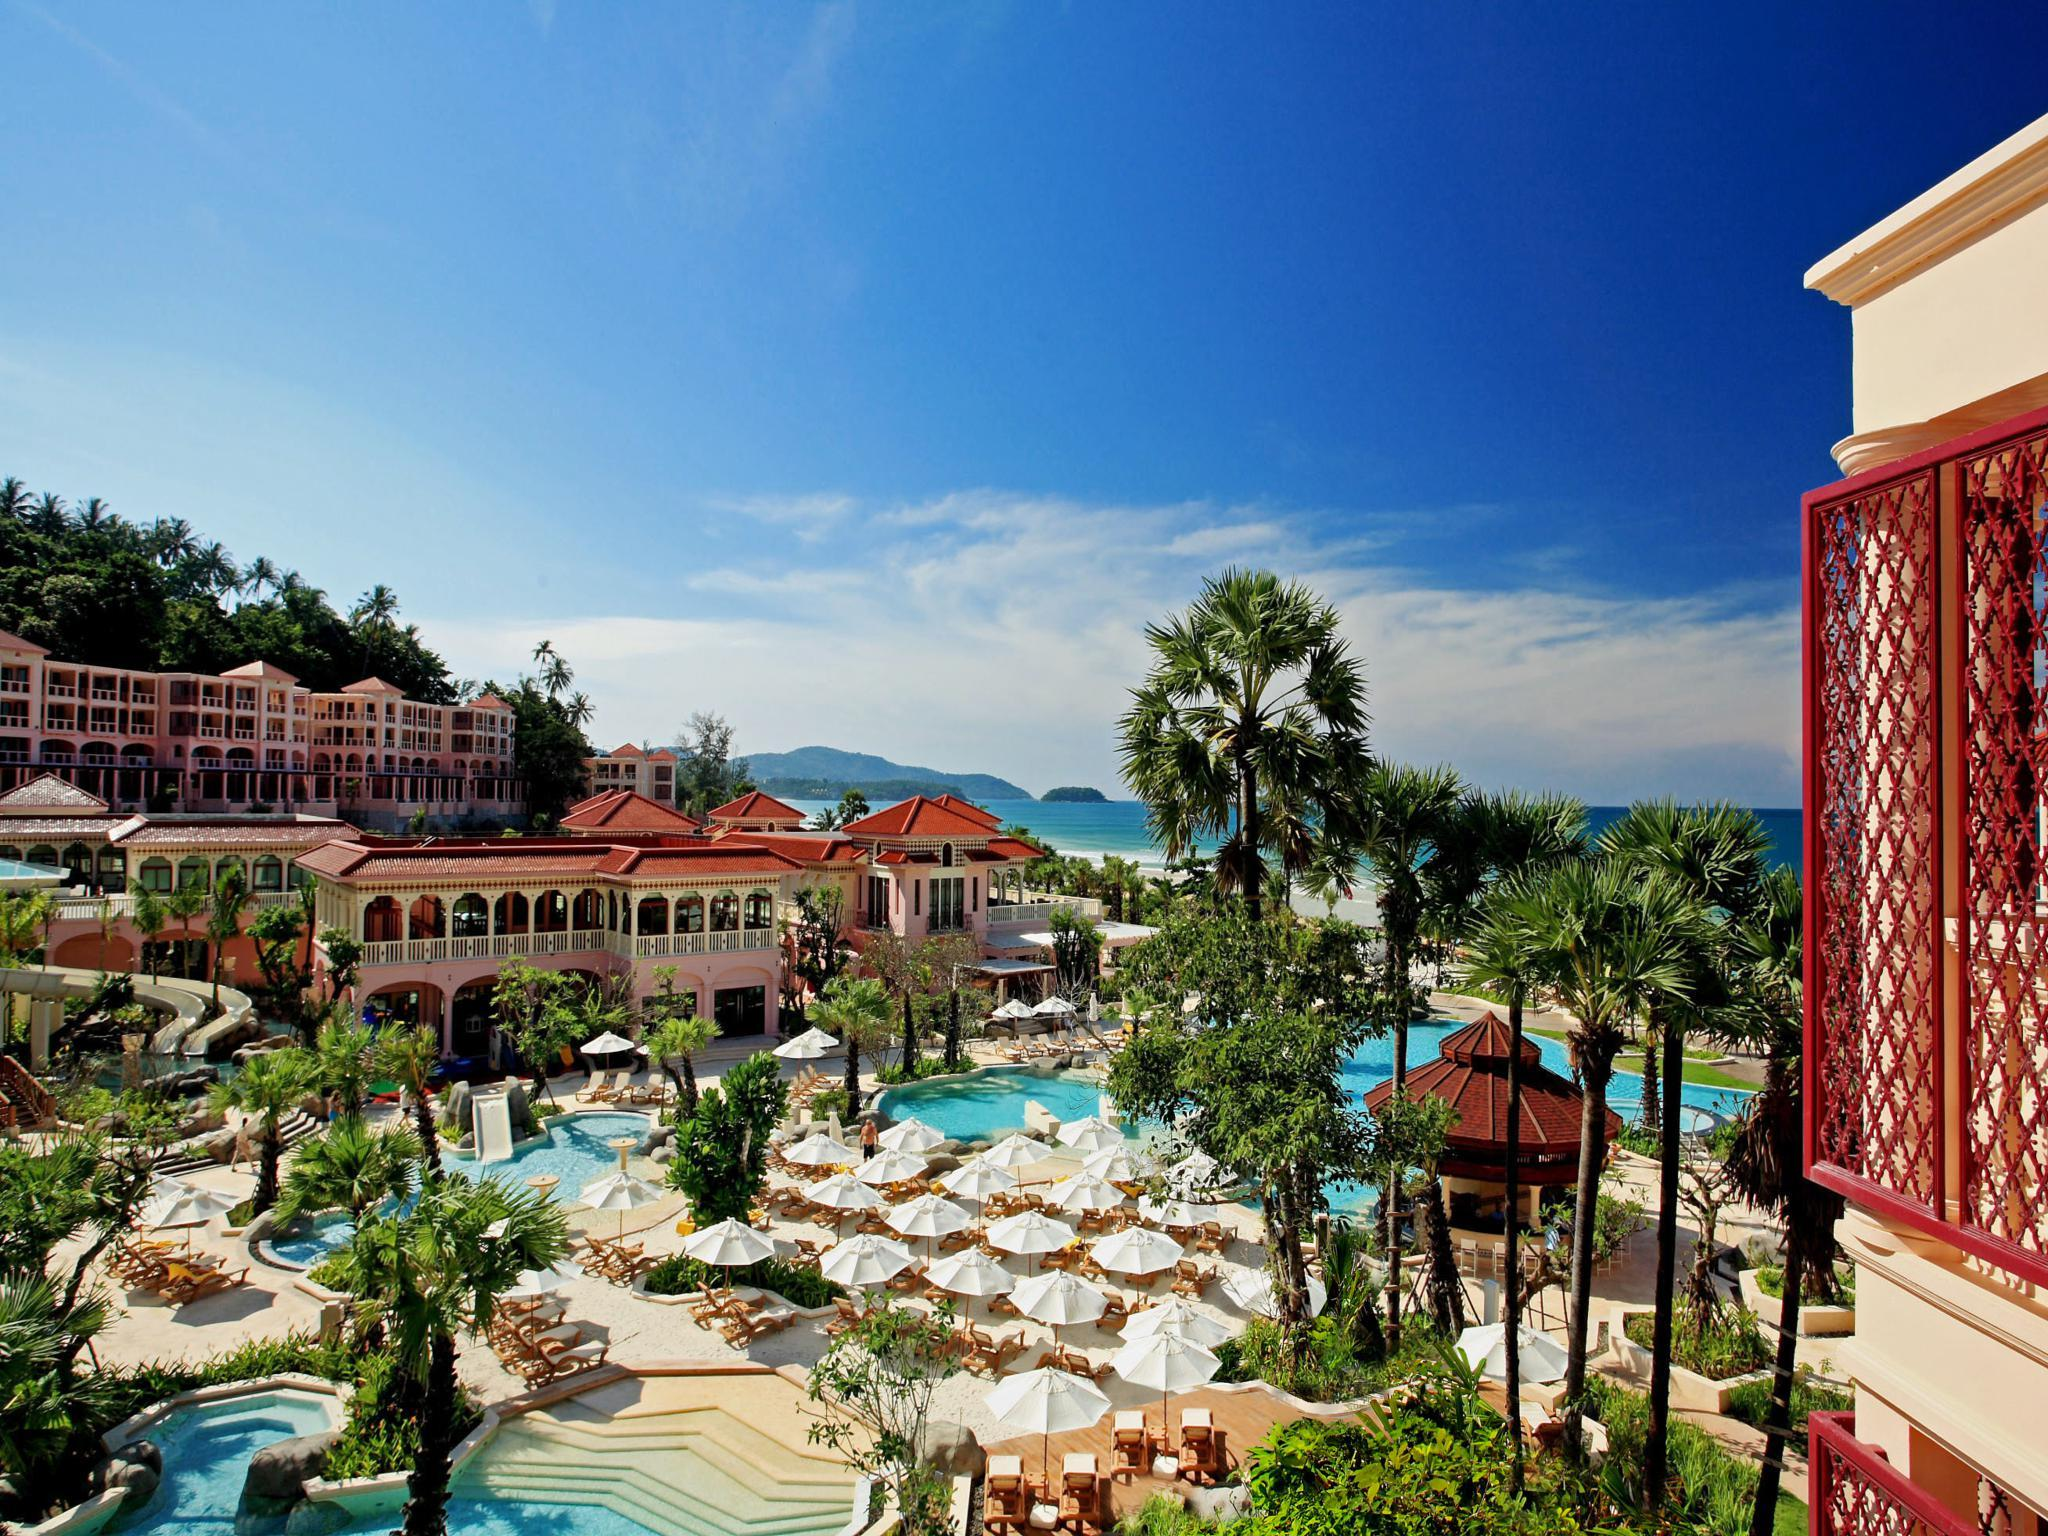 Centara Grand Beach Resort Phuket プーケット